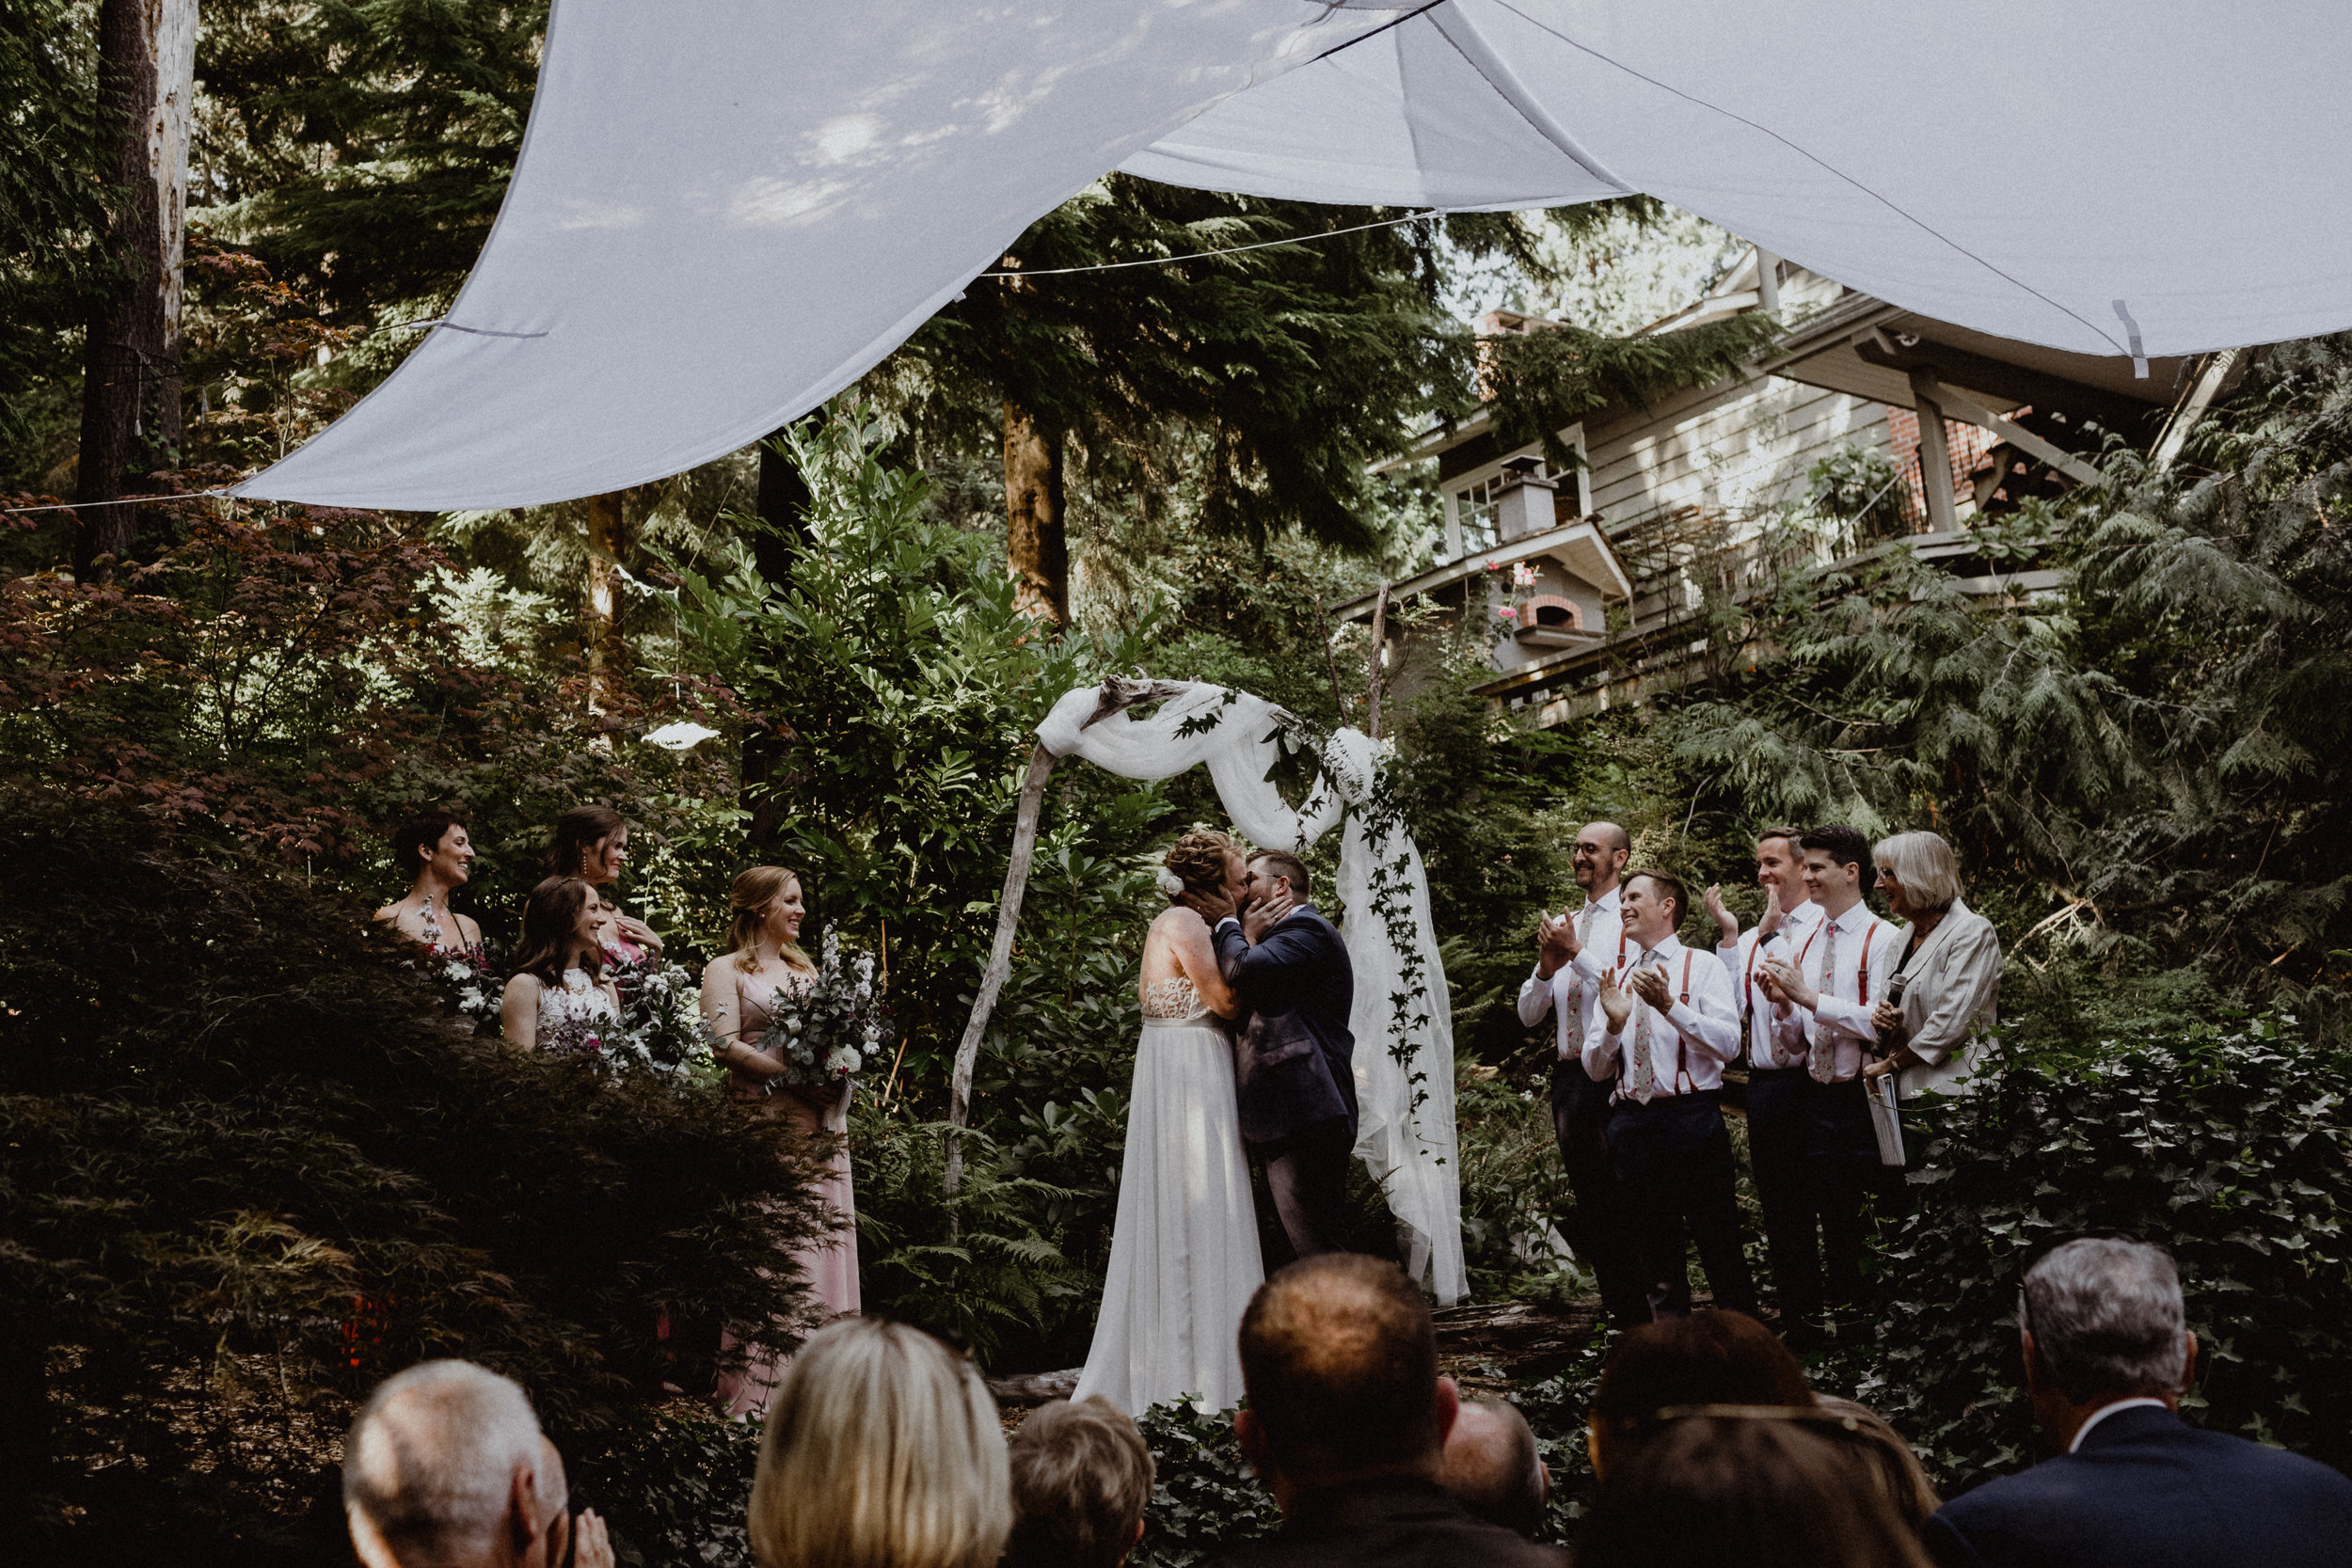 An intimate wedding ceremony photo at a backyard wedding in West Vancouver